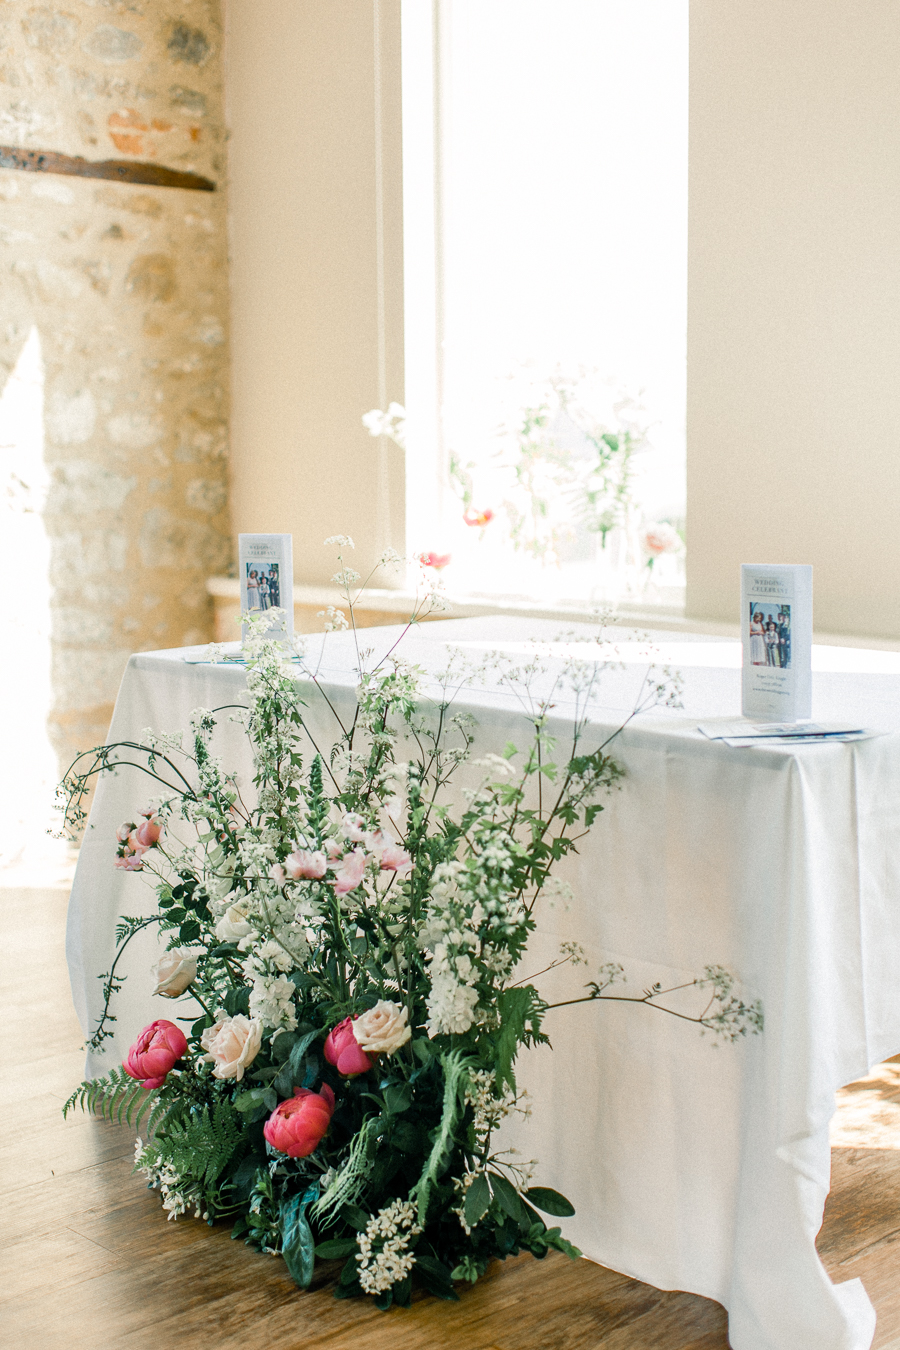 Jordans Courtyard rustic wedding styling ideas with images by Liz Baker Photography (6)